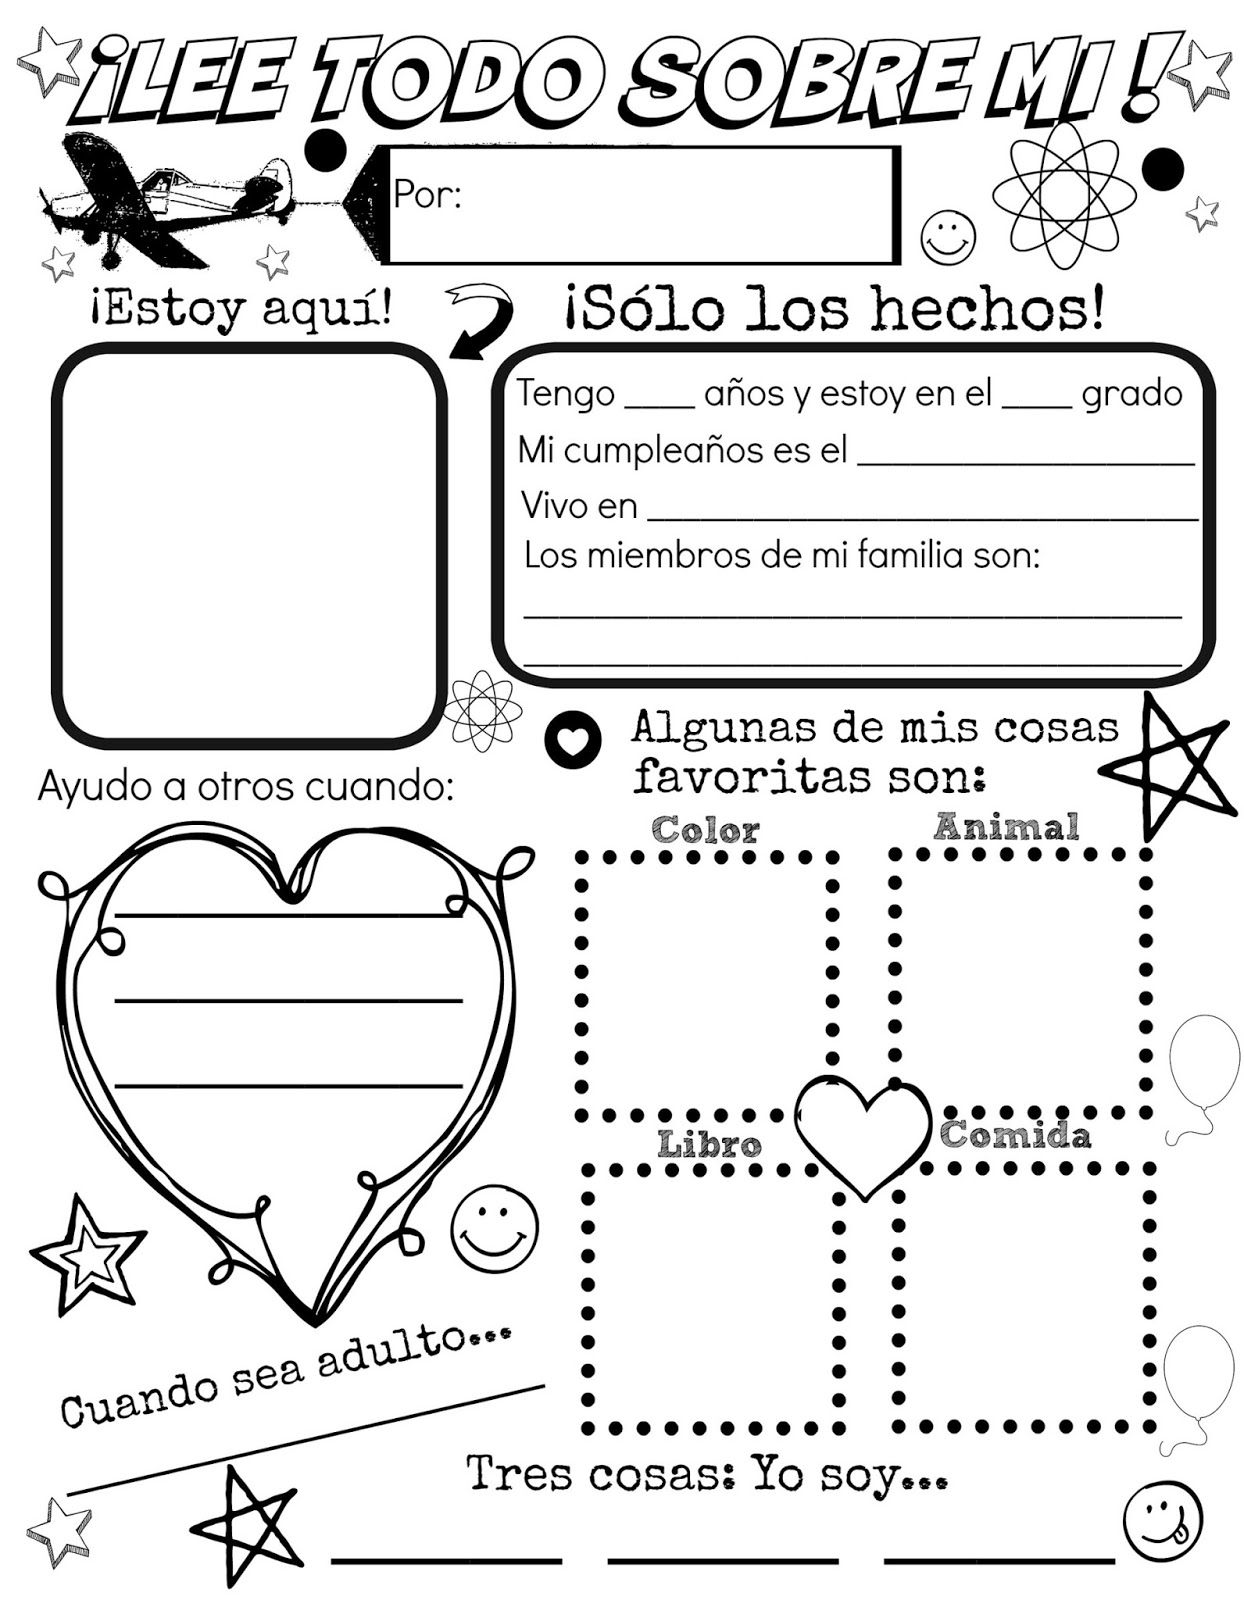 Spanish homework sheets – Free Printable Spanish Worksheets